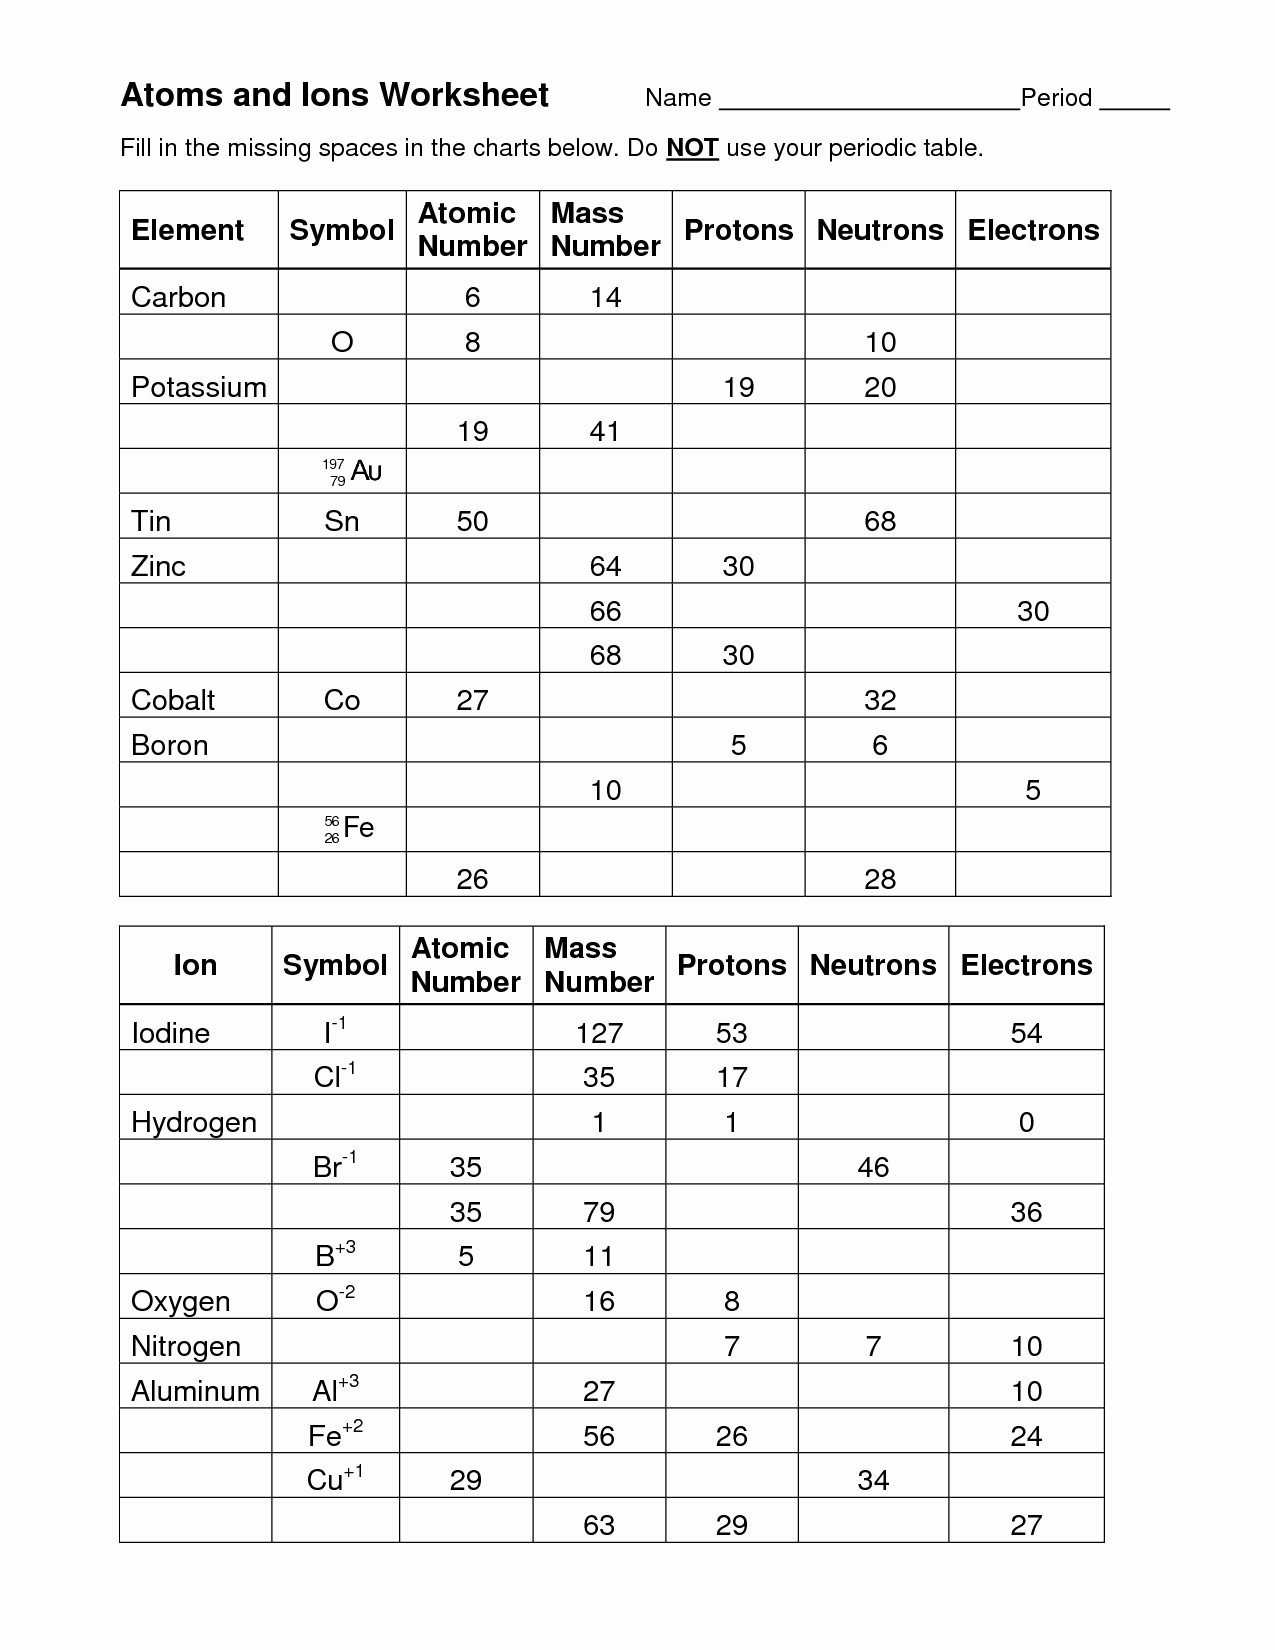 Atoms and Ions Worksheet Answers Unique Worksheet Ions